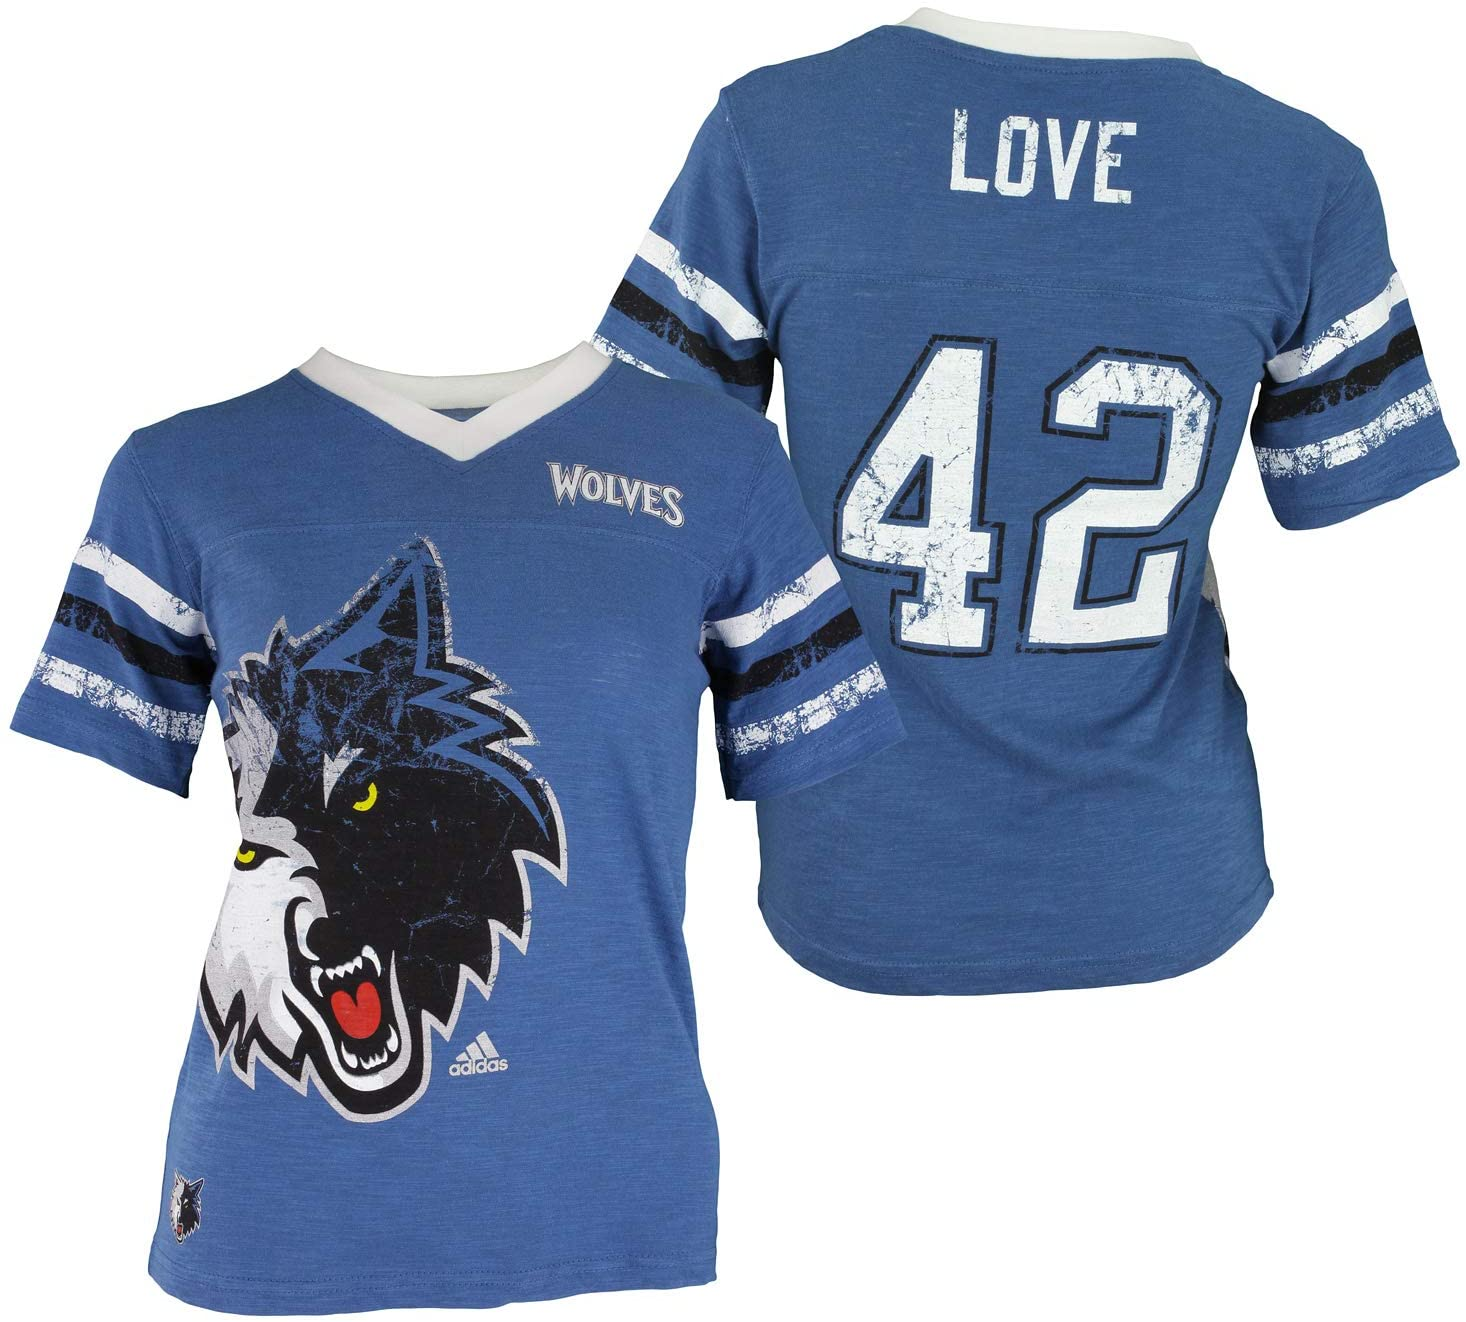 OuterStuff NBA Youth Girls Minnesota Timberwolves Kevin Love Replica Jersey Tee, Medium